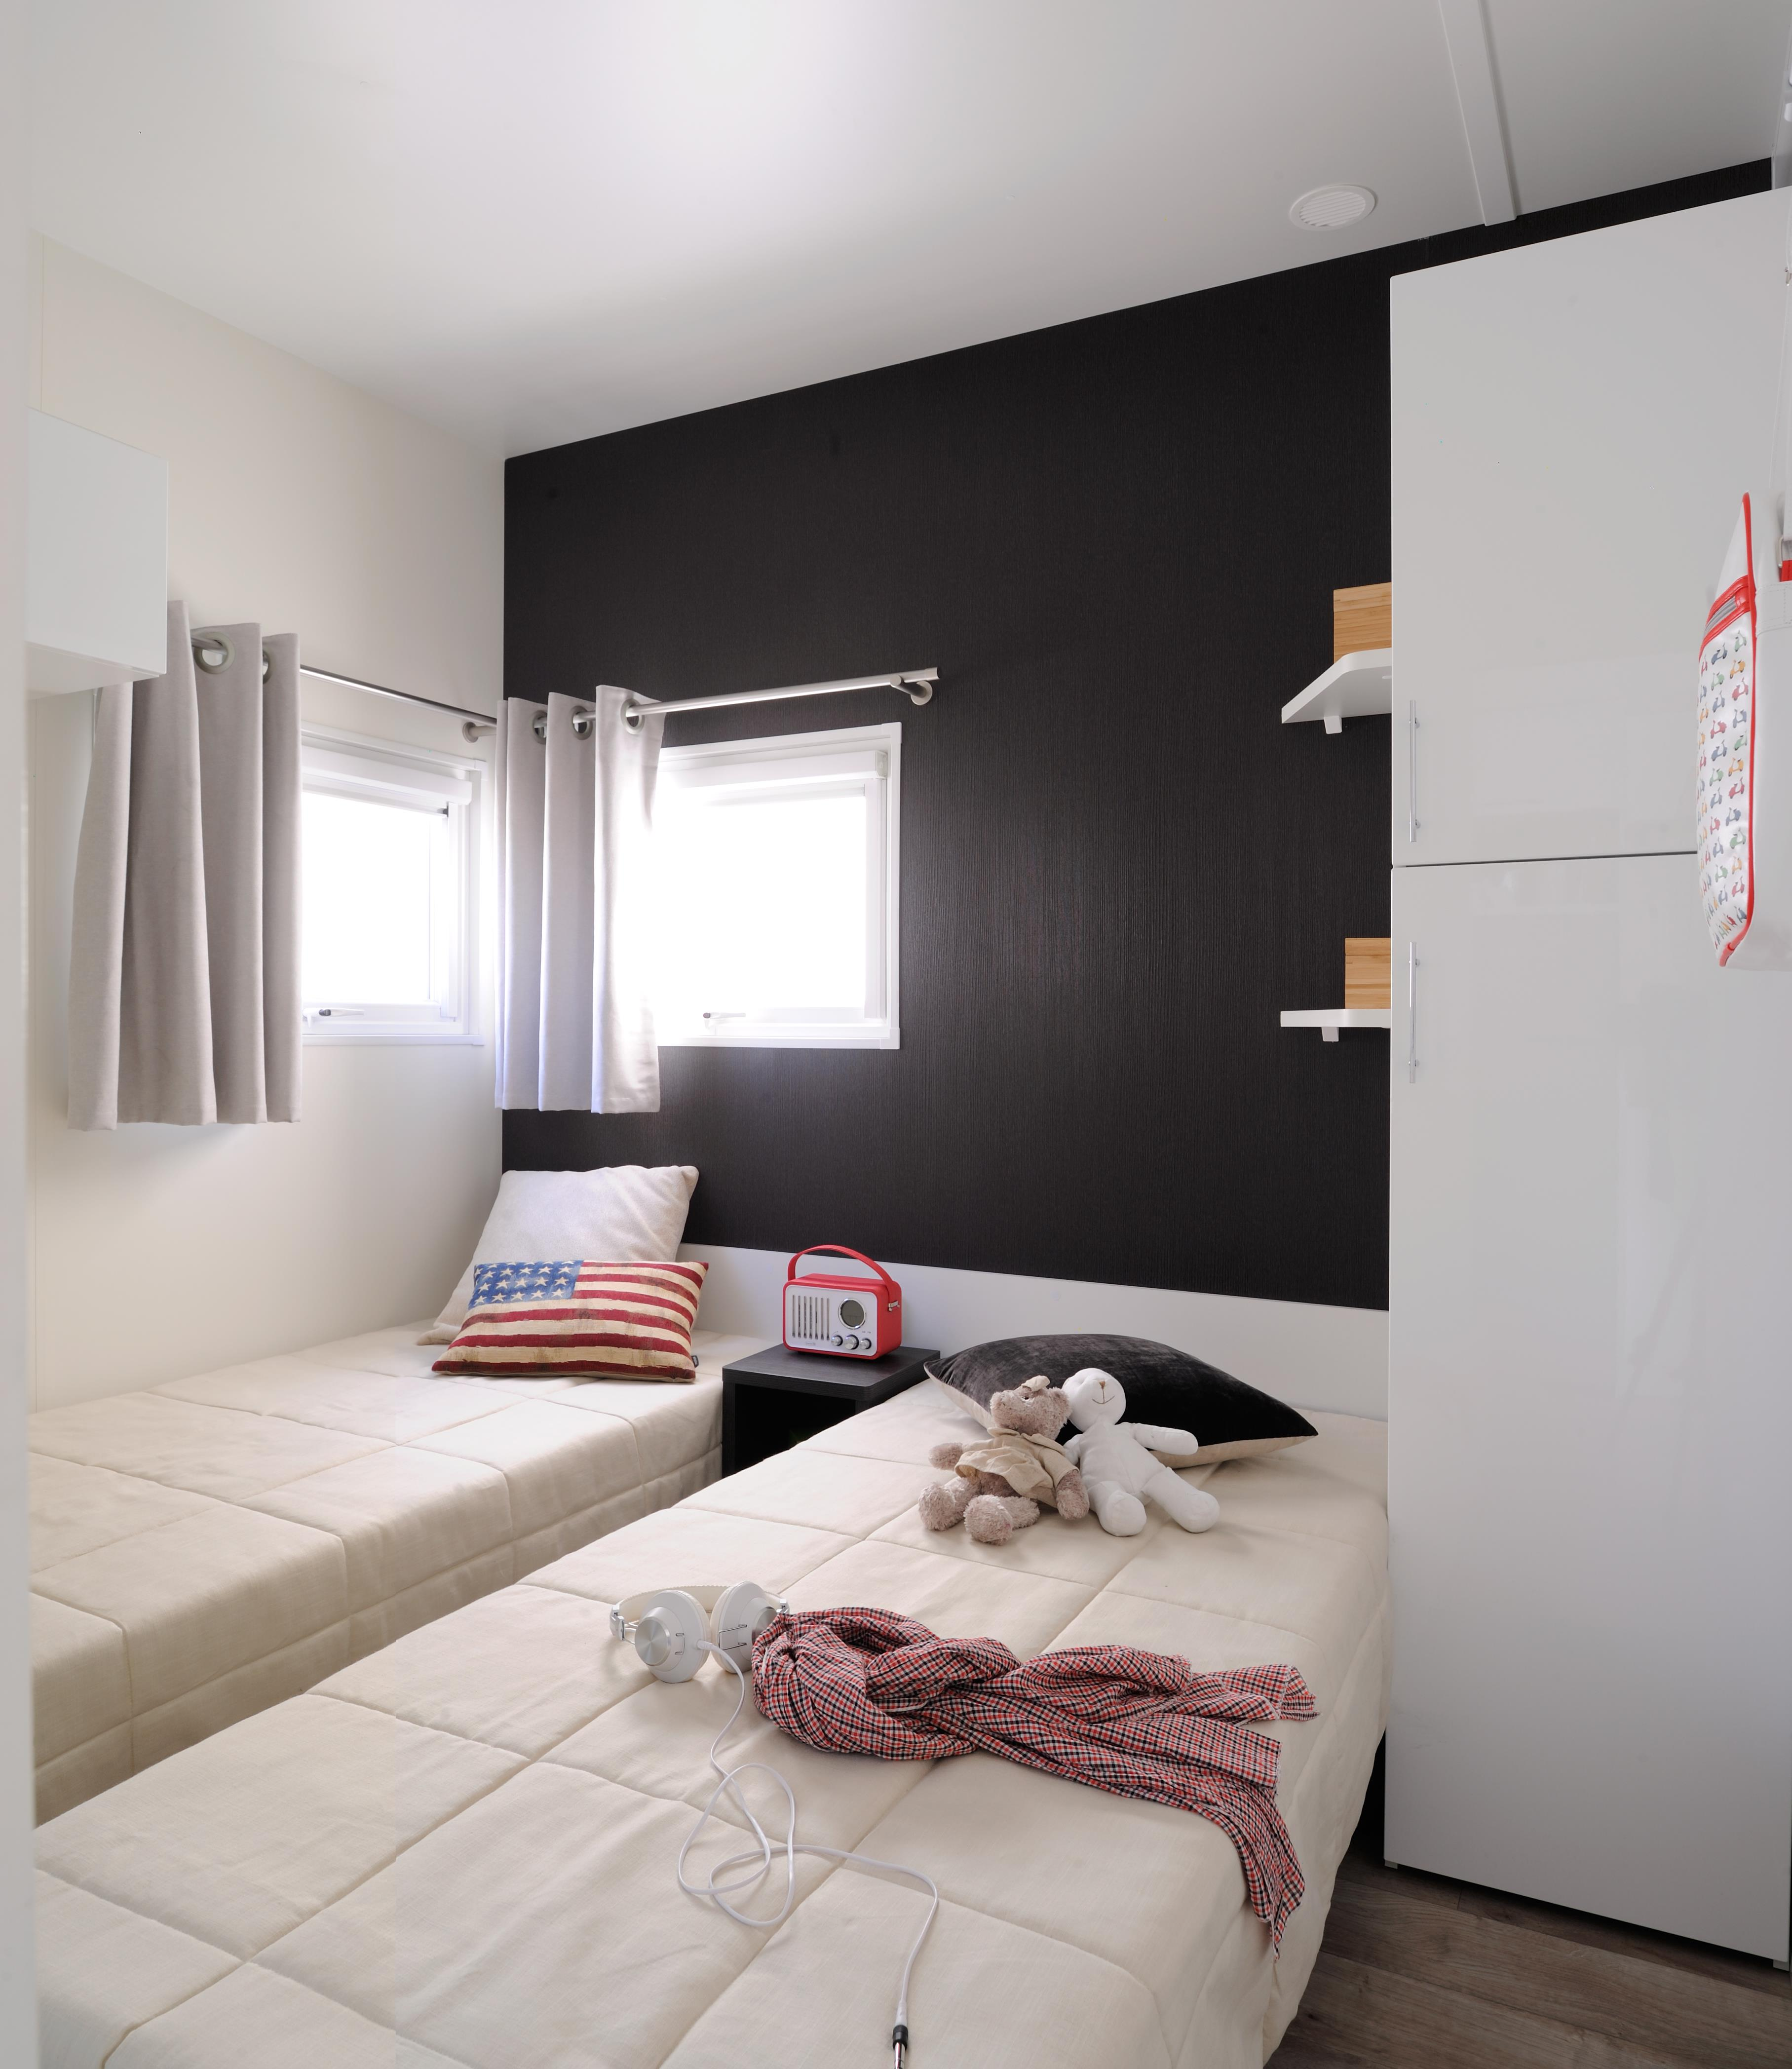 mobil home sunelia luxe taos 38m 3 zimmer tv. Black Bedroom Furniture Sets. Home Design Ideas